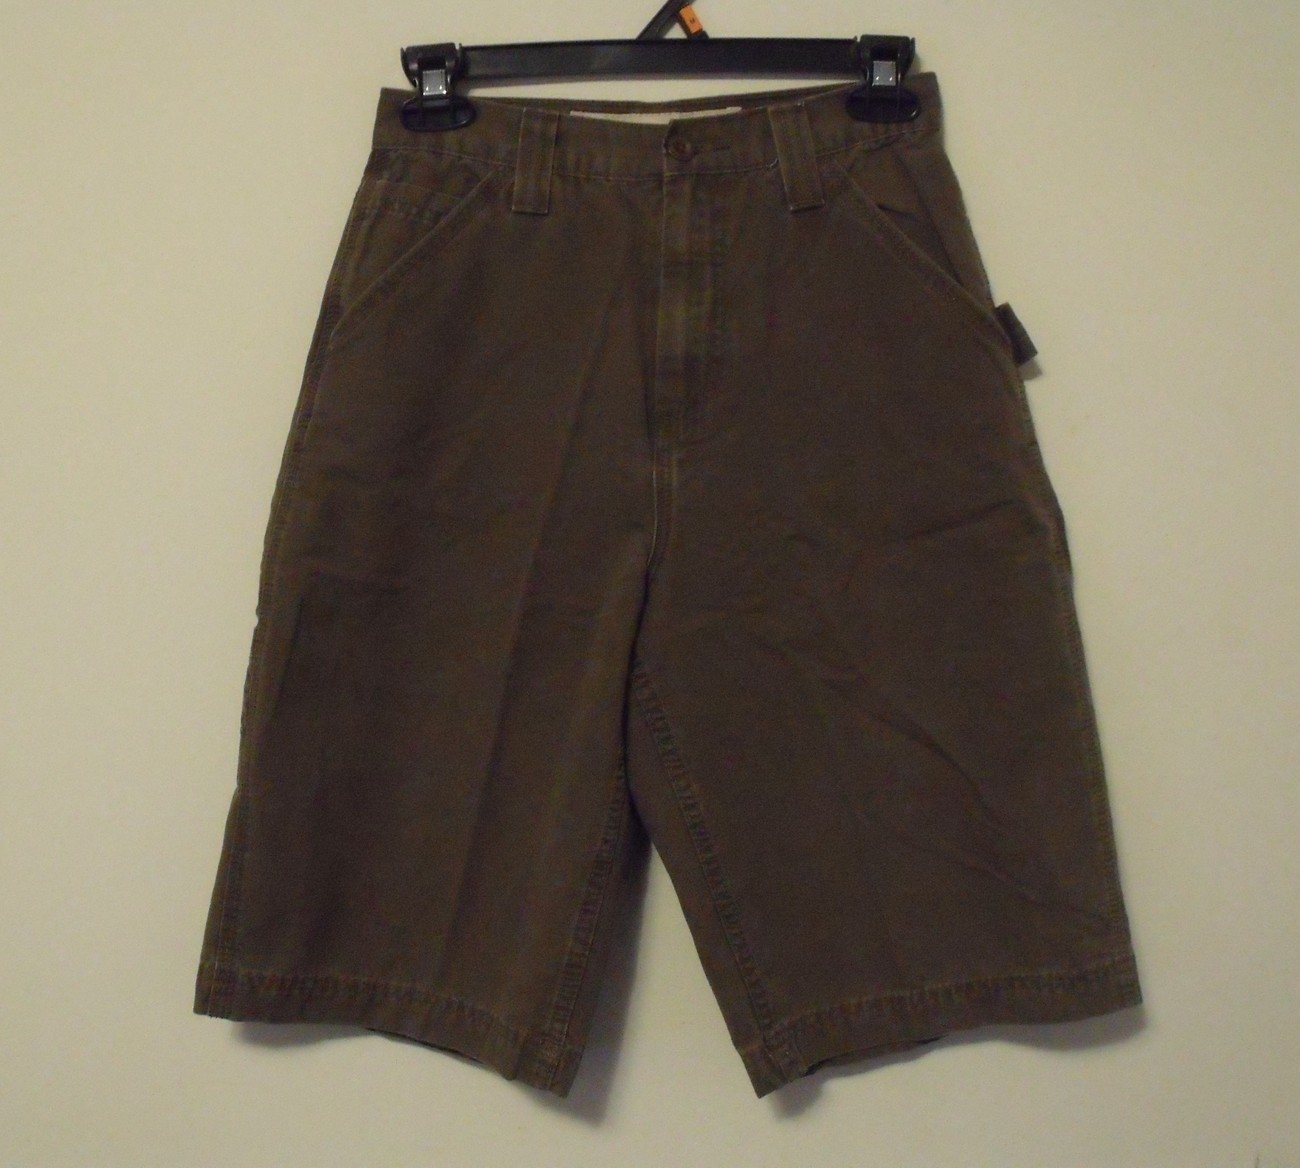 Primary image for Boys Arizona Jean Company Carpenter Style Brown Shorts Size 16 Slim